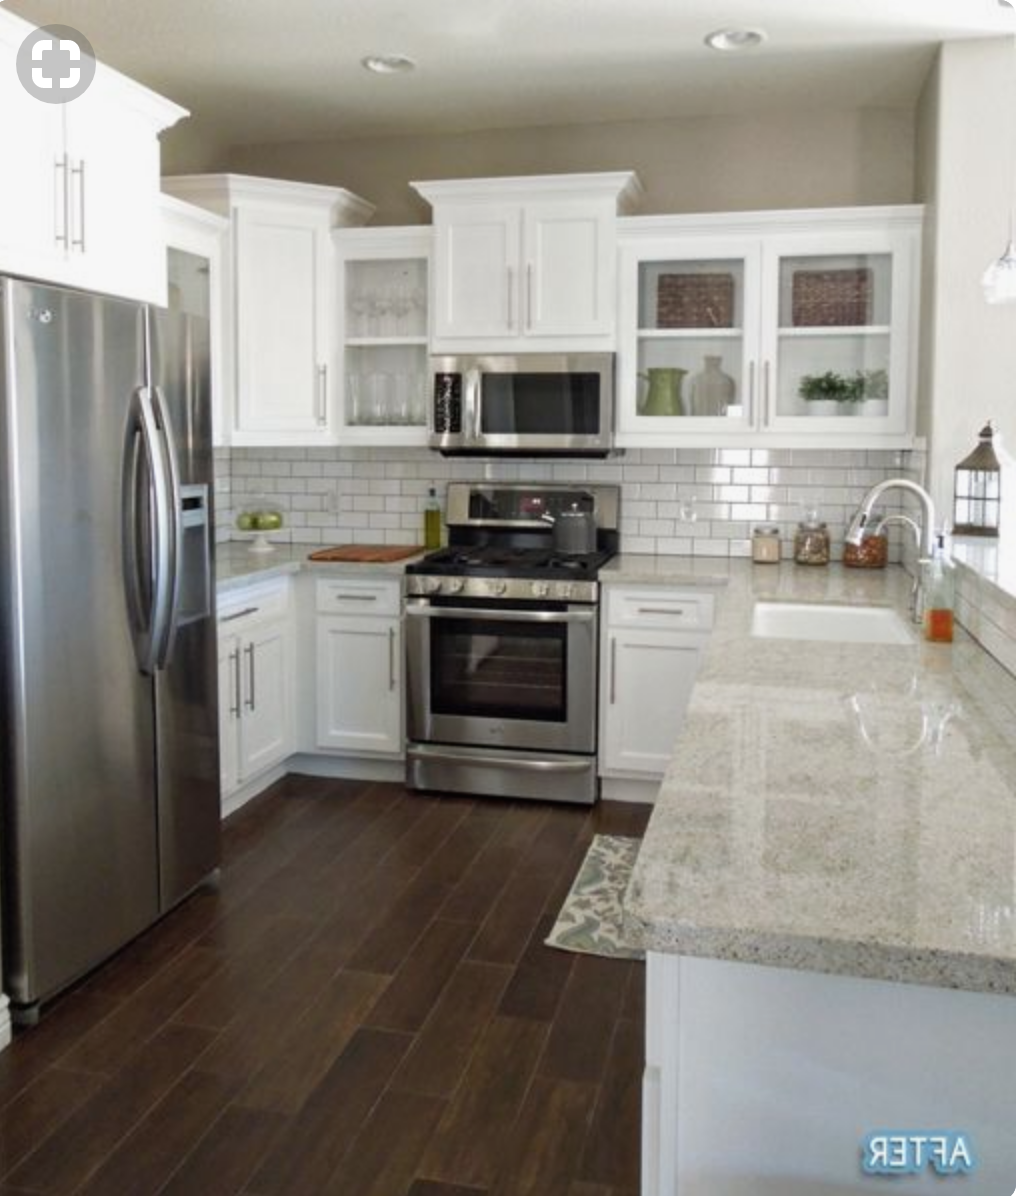 u shaped kitchen that could go on back wall kitchen design small kitchen remodel small on u kitchen decor id=32727